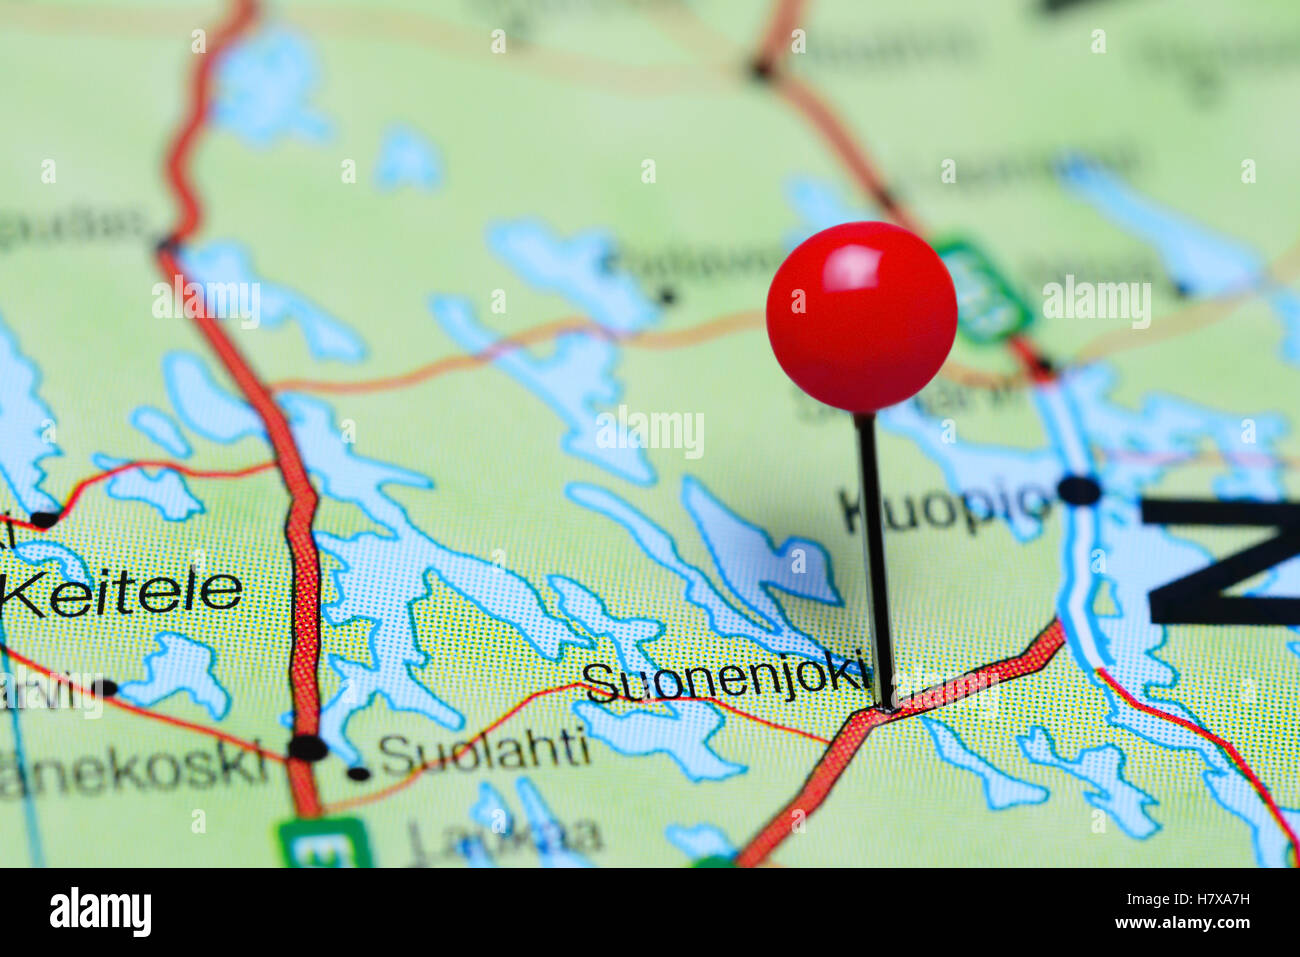 Suonenjoki pinned on a map of Finland - Stock Image